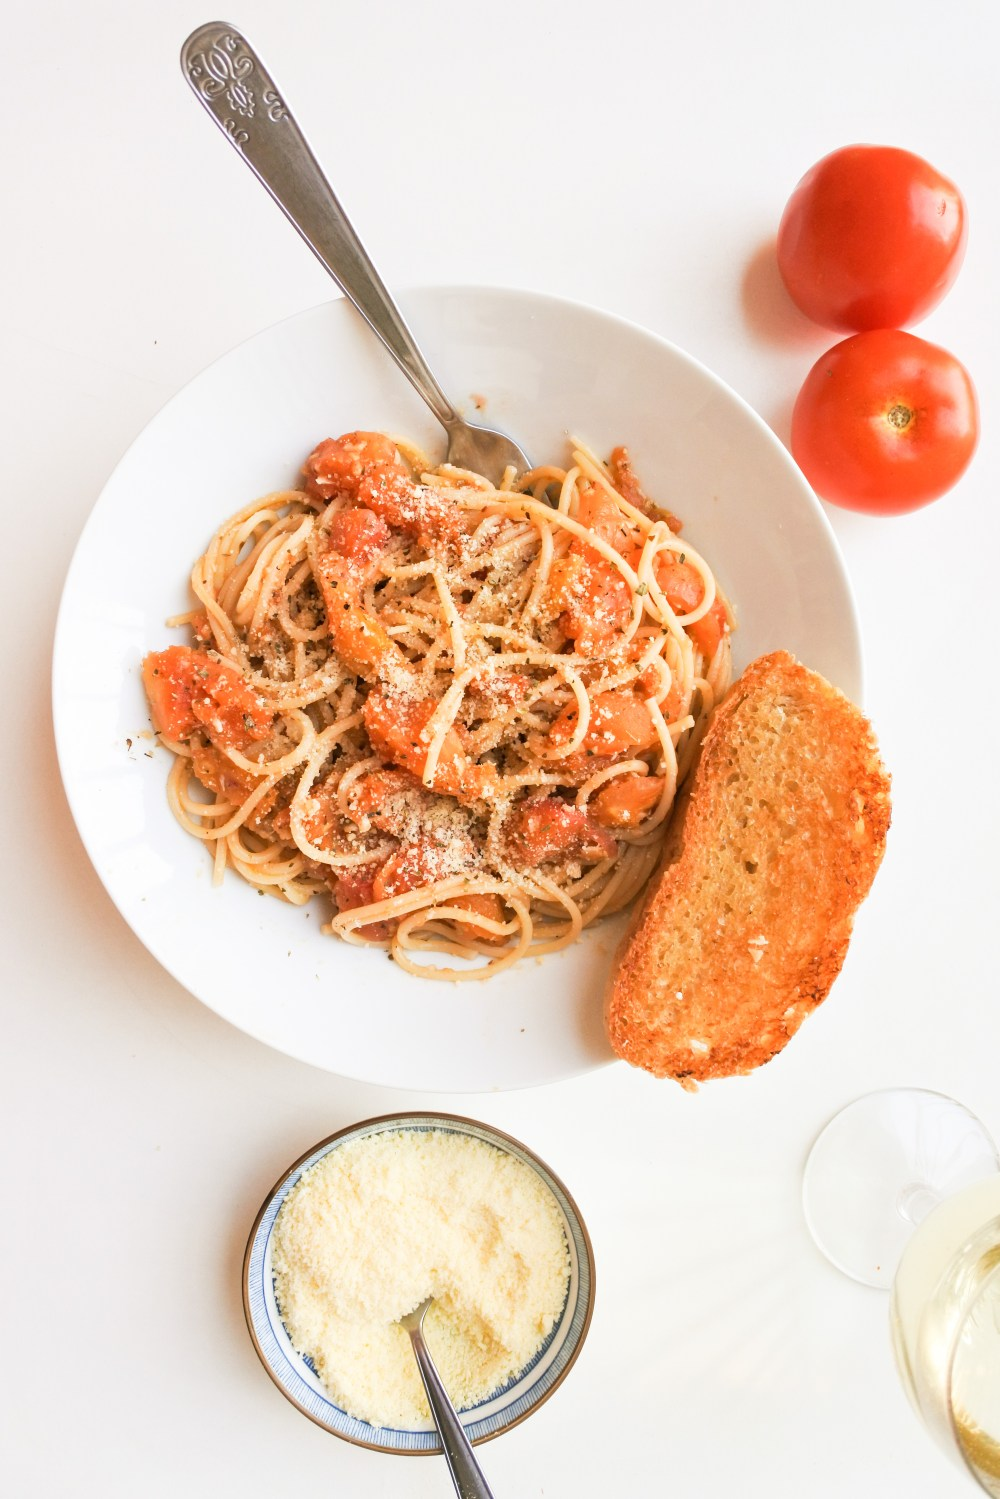 A plate of spaghetti tossed with roasted tomatoes and dusted with Parmesan cheese served with garlic bread